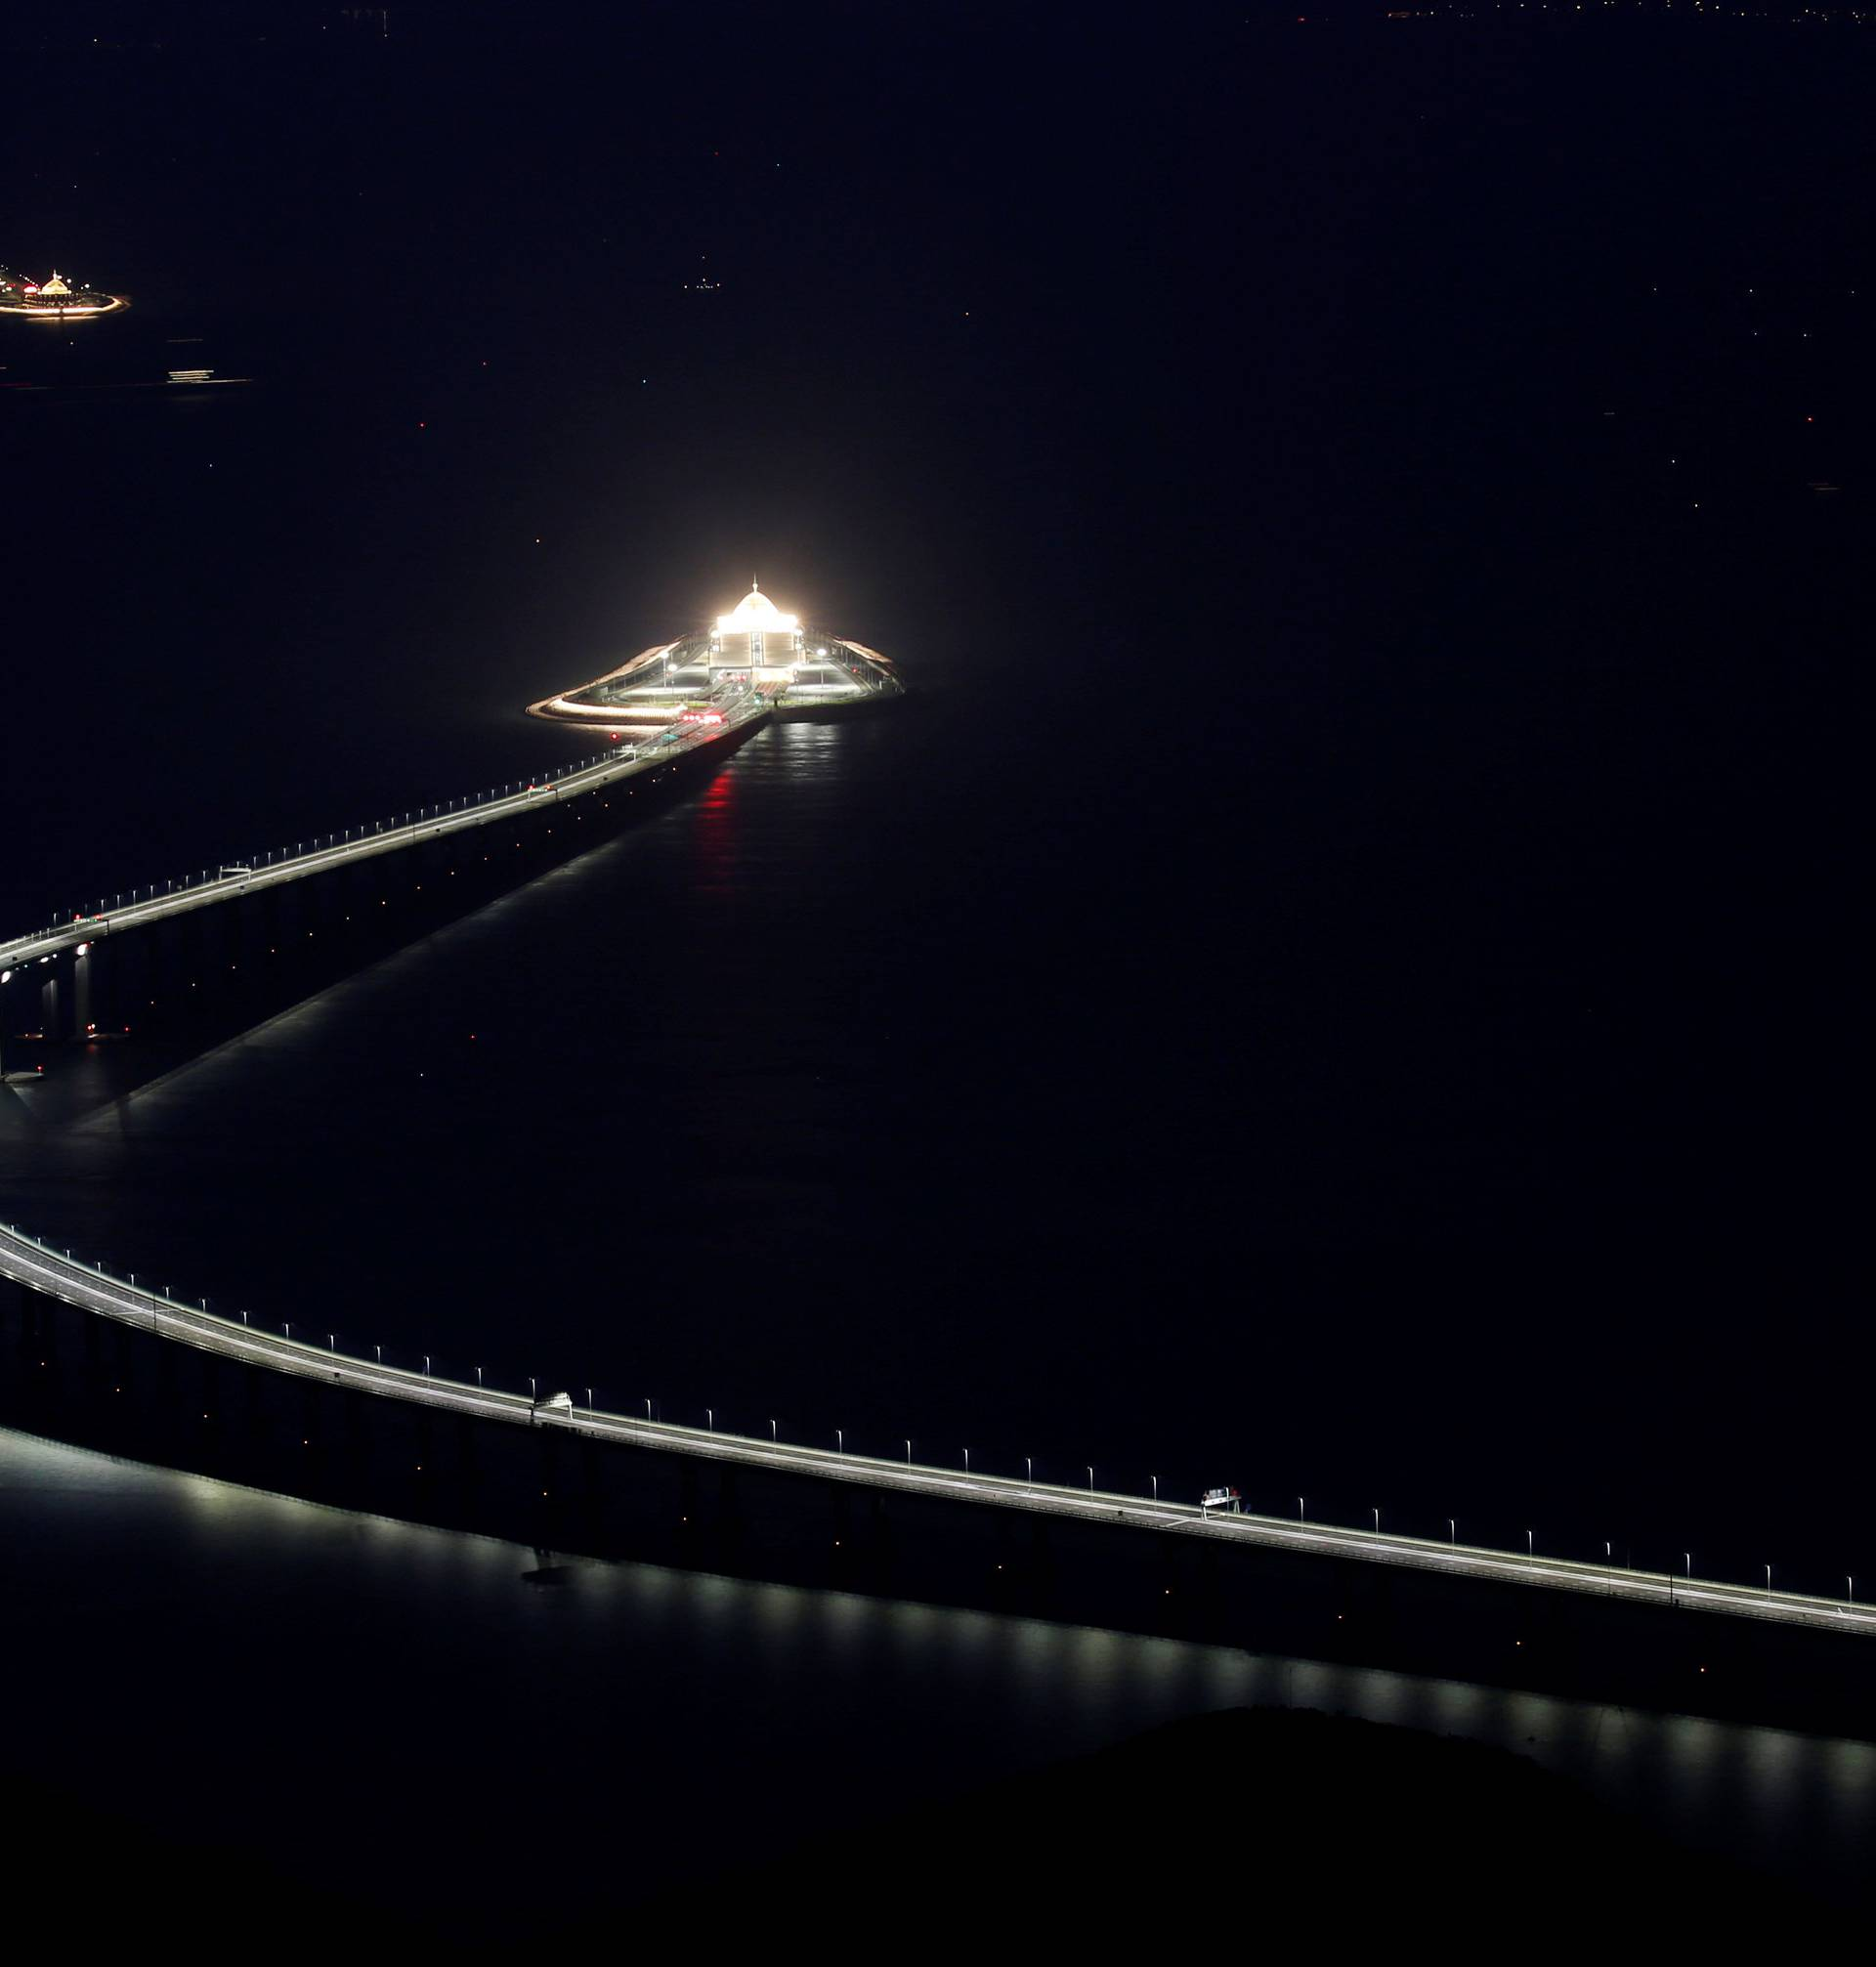 A evening view of the Hong Kong-Zhuhai-Macau bridge off Lantau island in Hong Kong